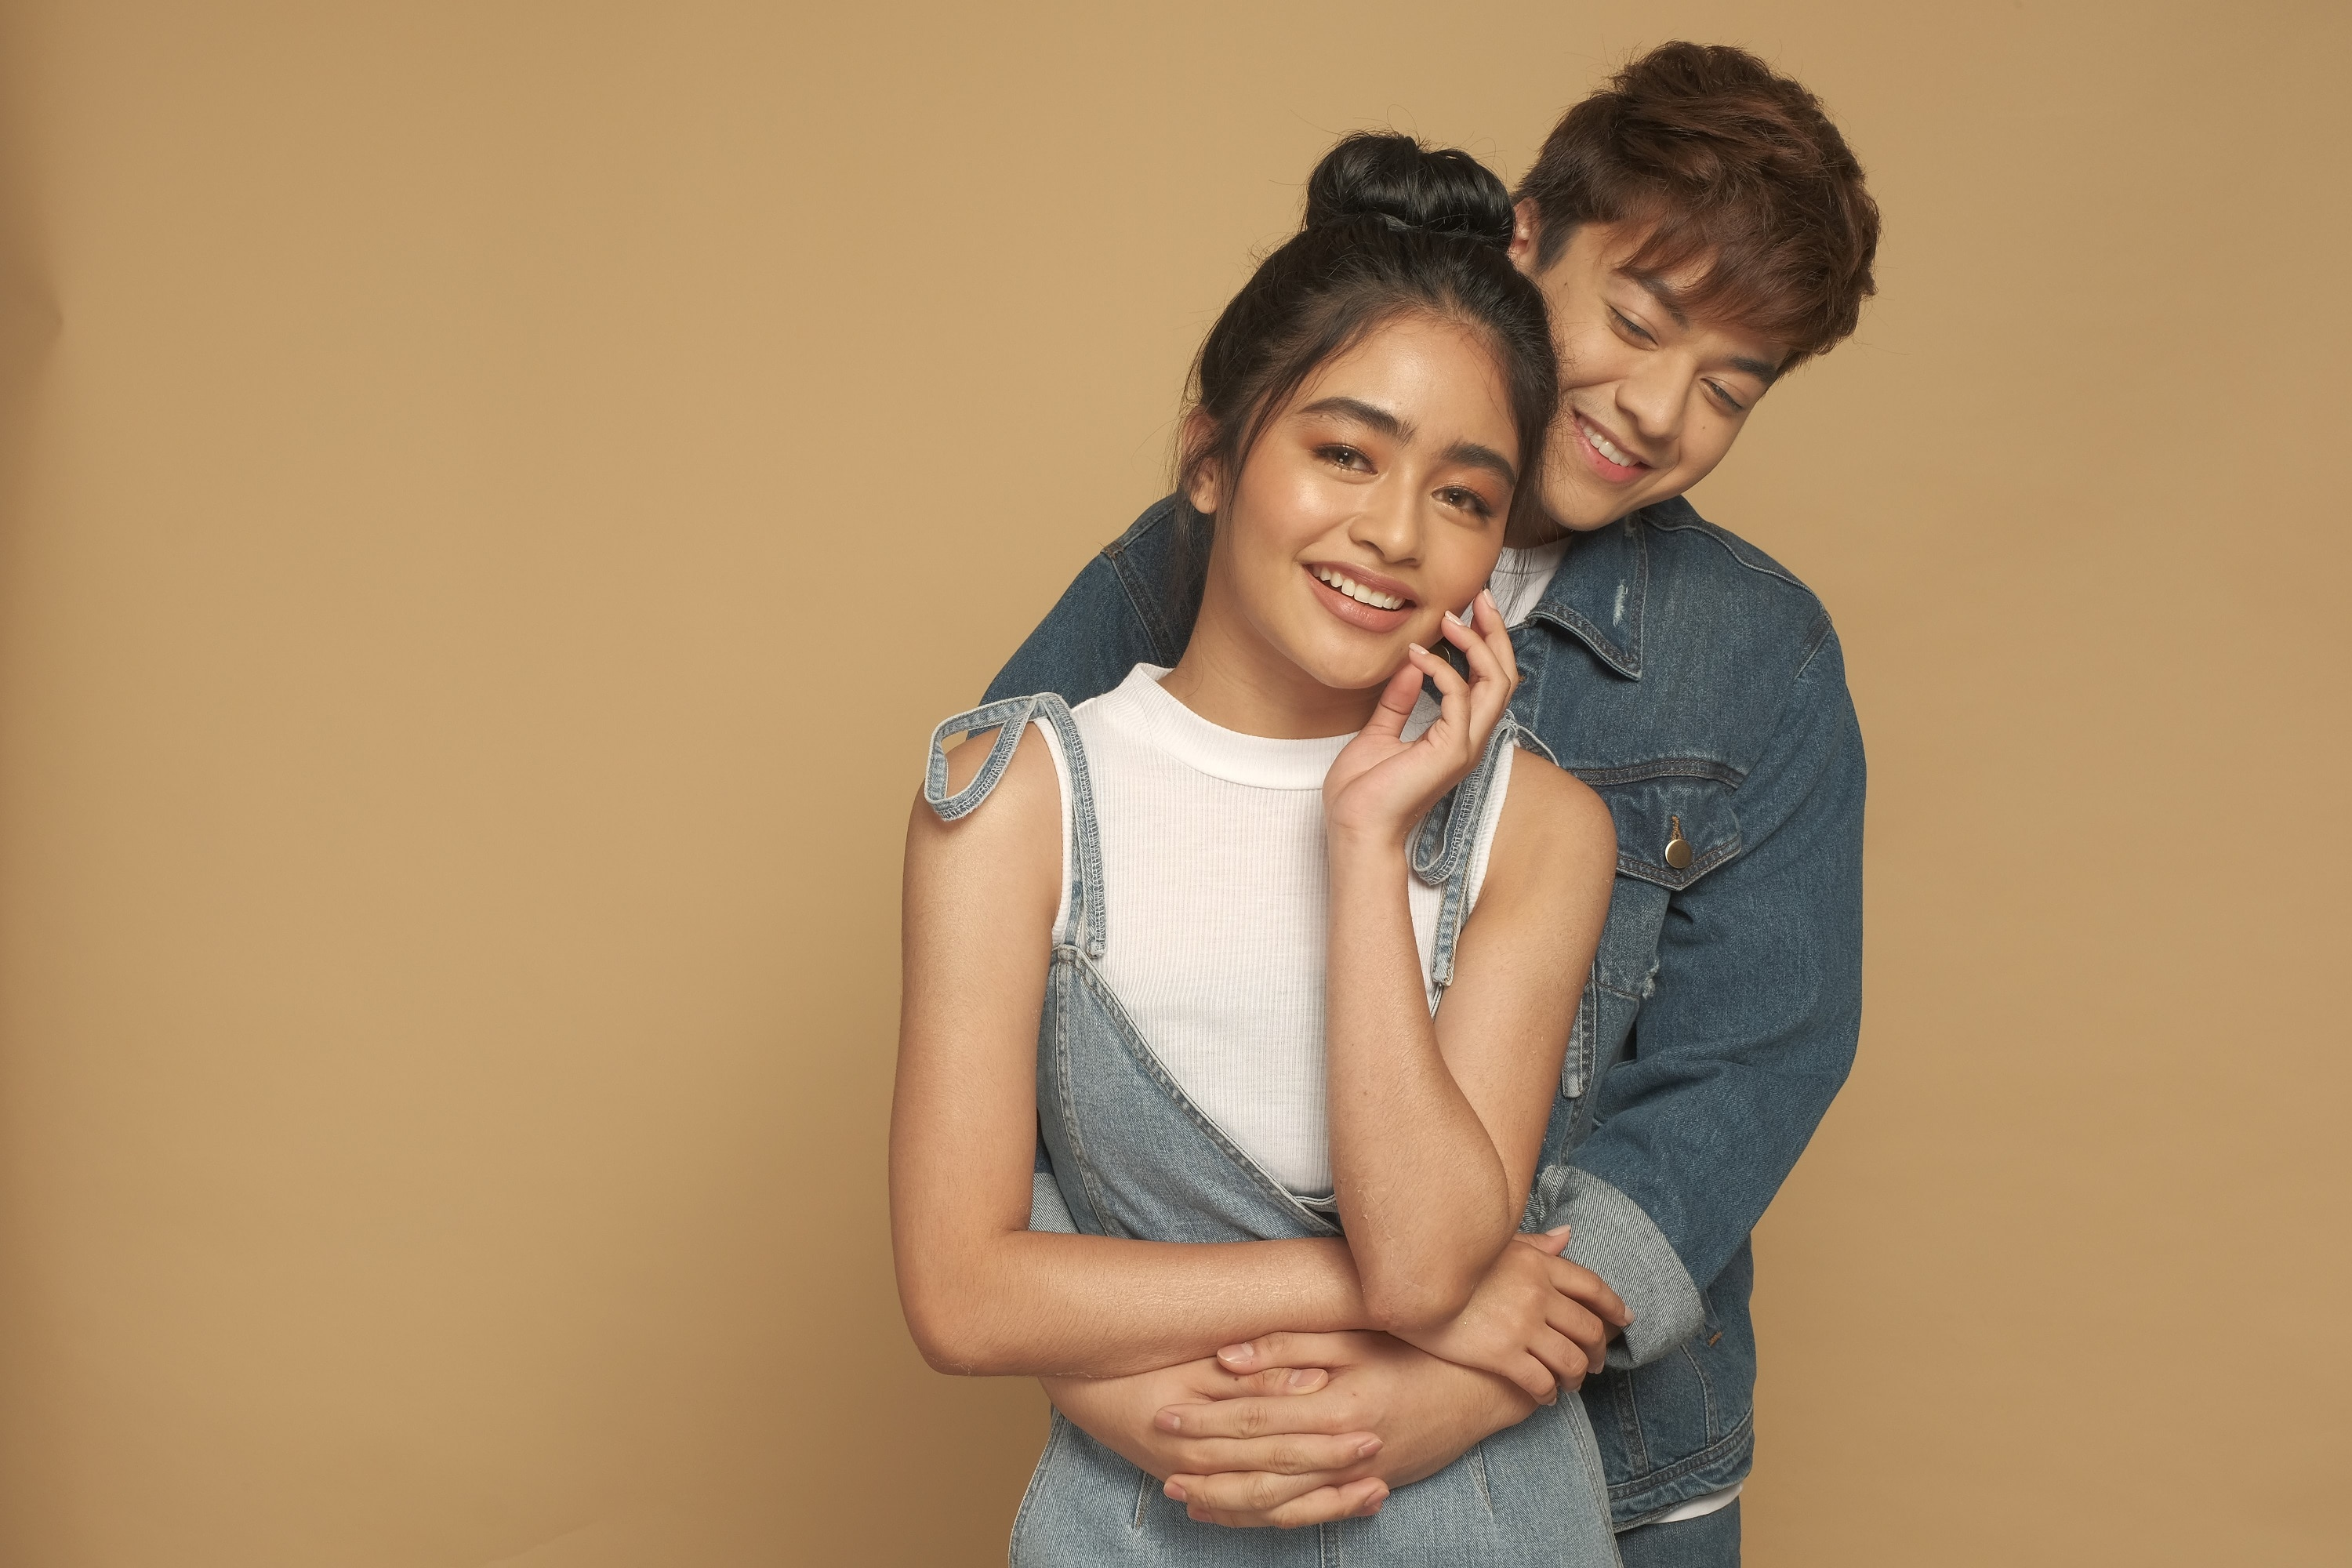 KierVi to launch debut album this Friday